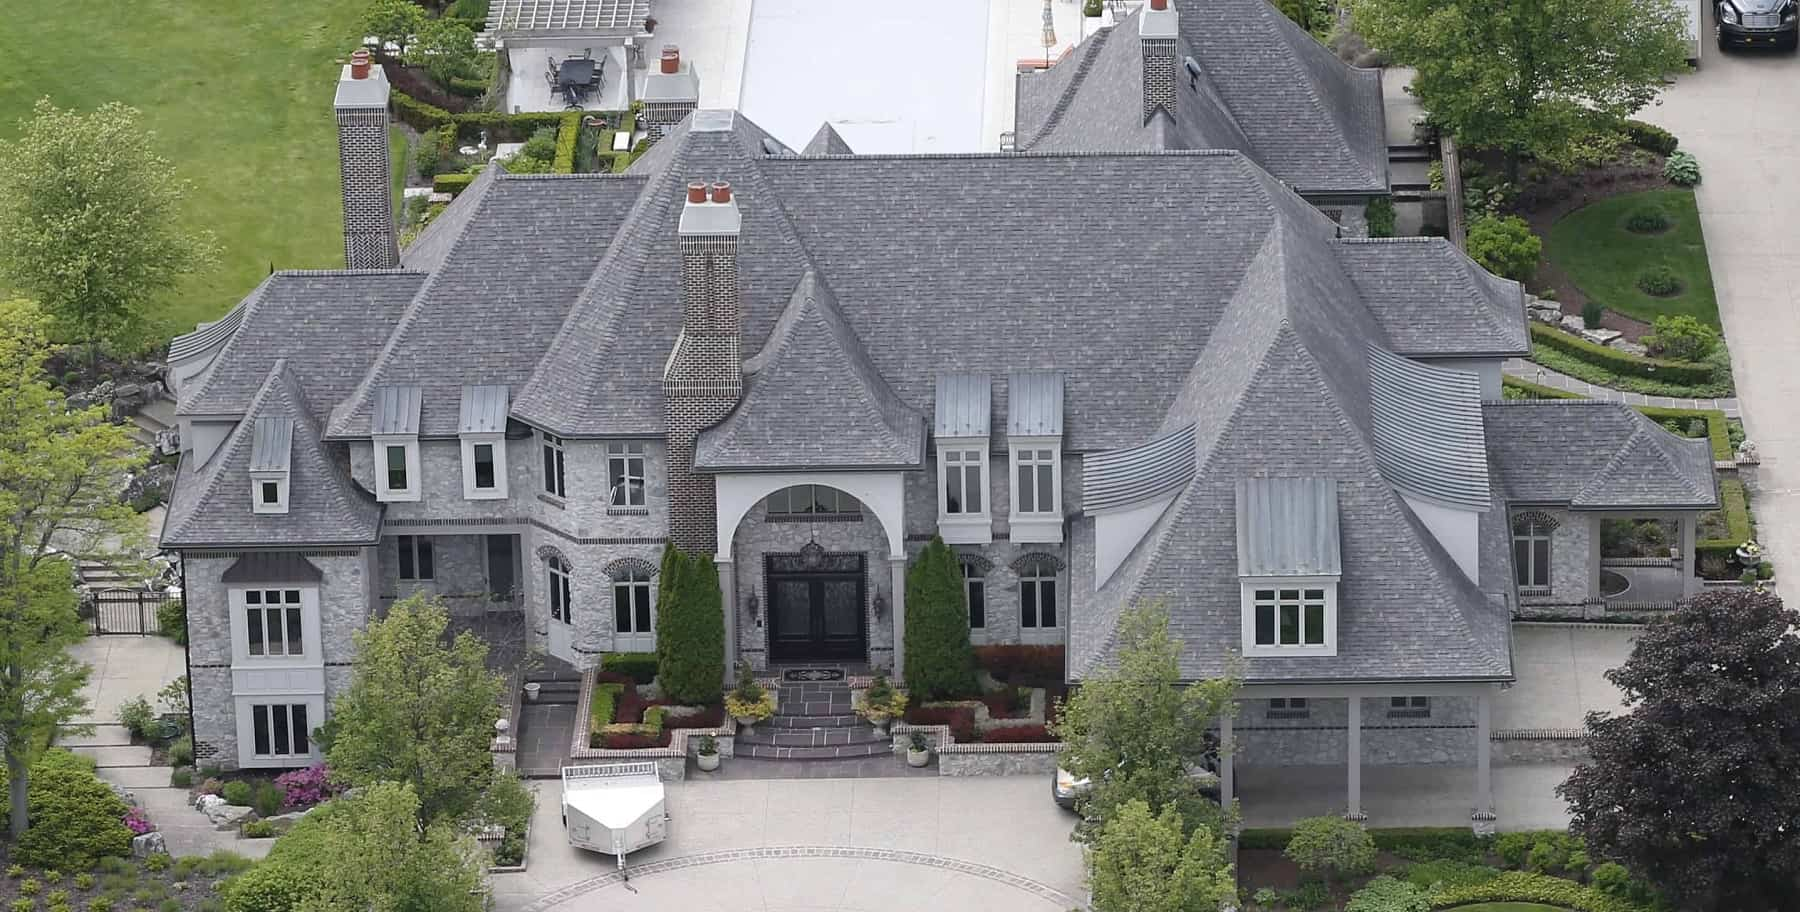 Large European or French Chateau style home with stone siding